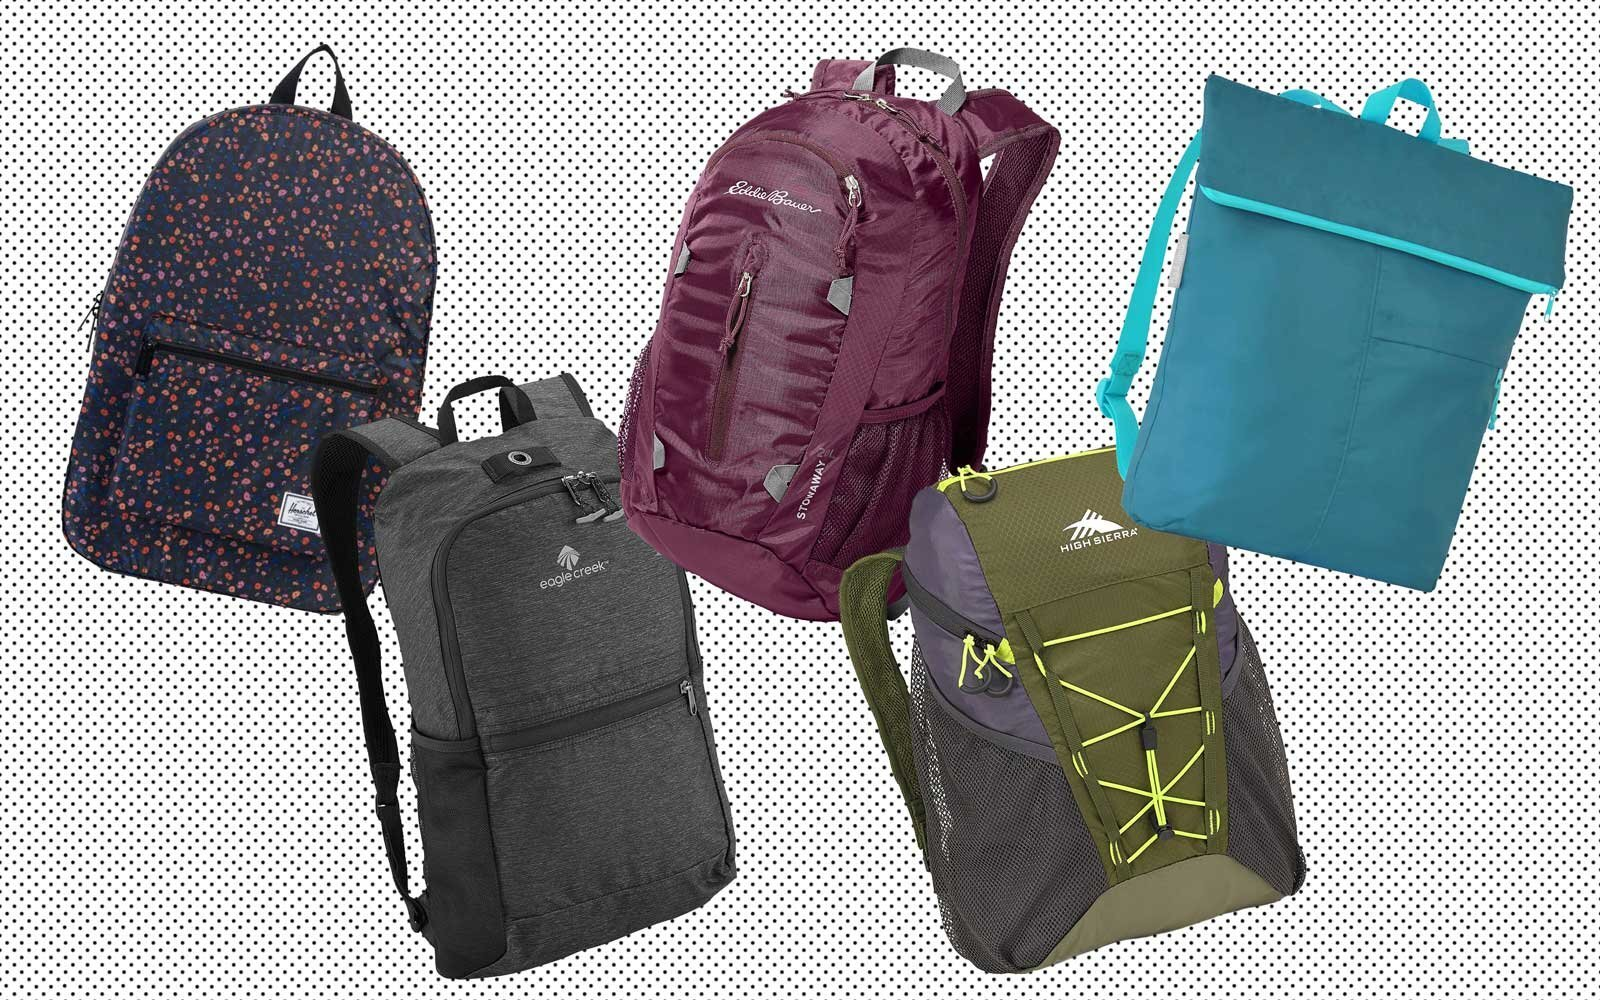 78cad7a6bd28 The 11 Best Packable Backpacks for Travelers | Travel + Leisure